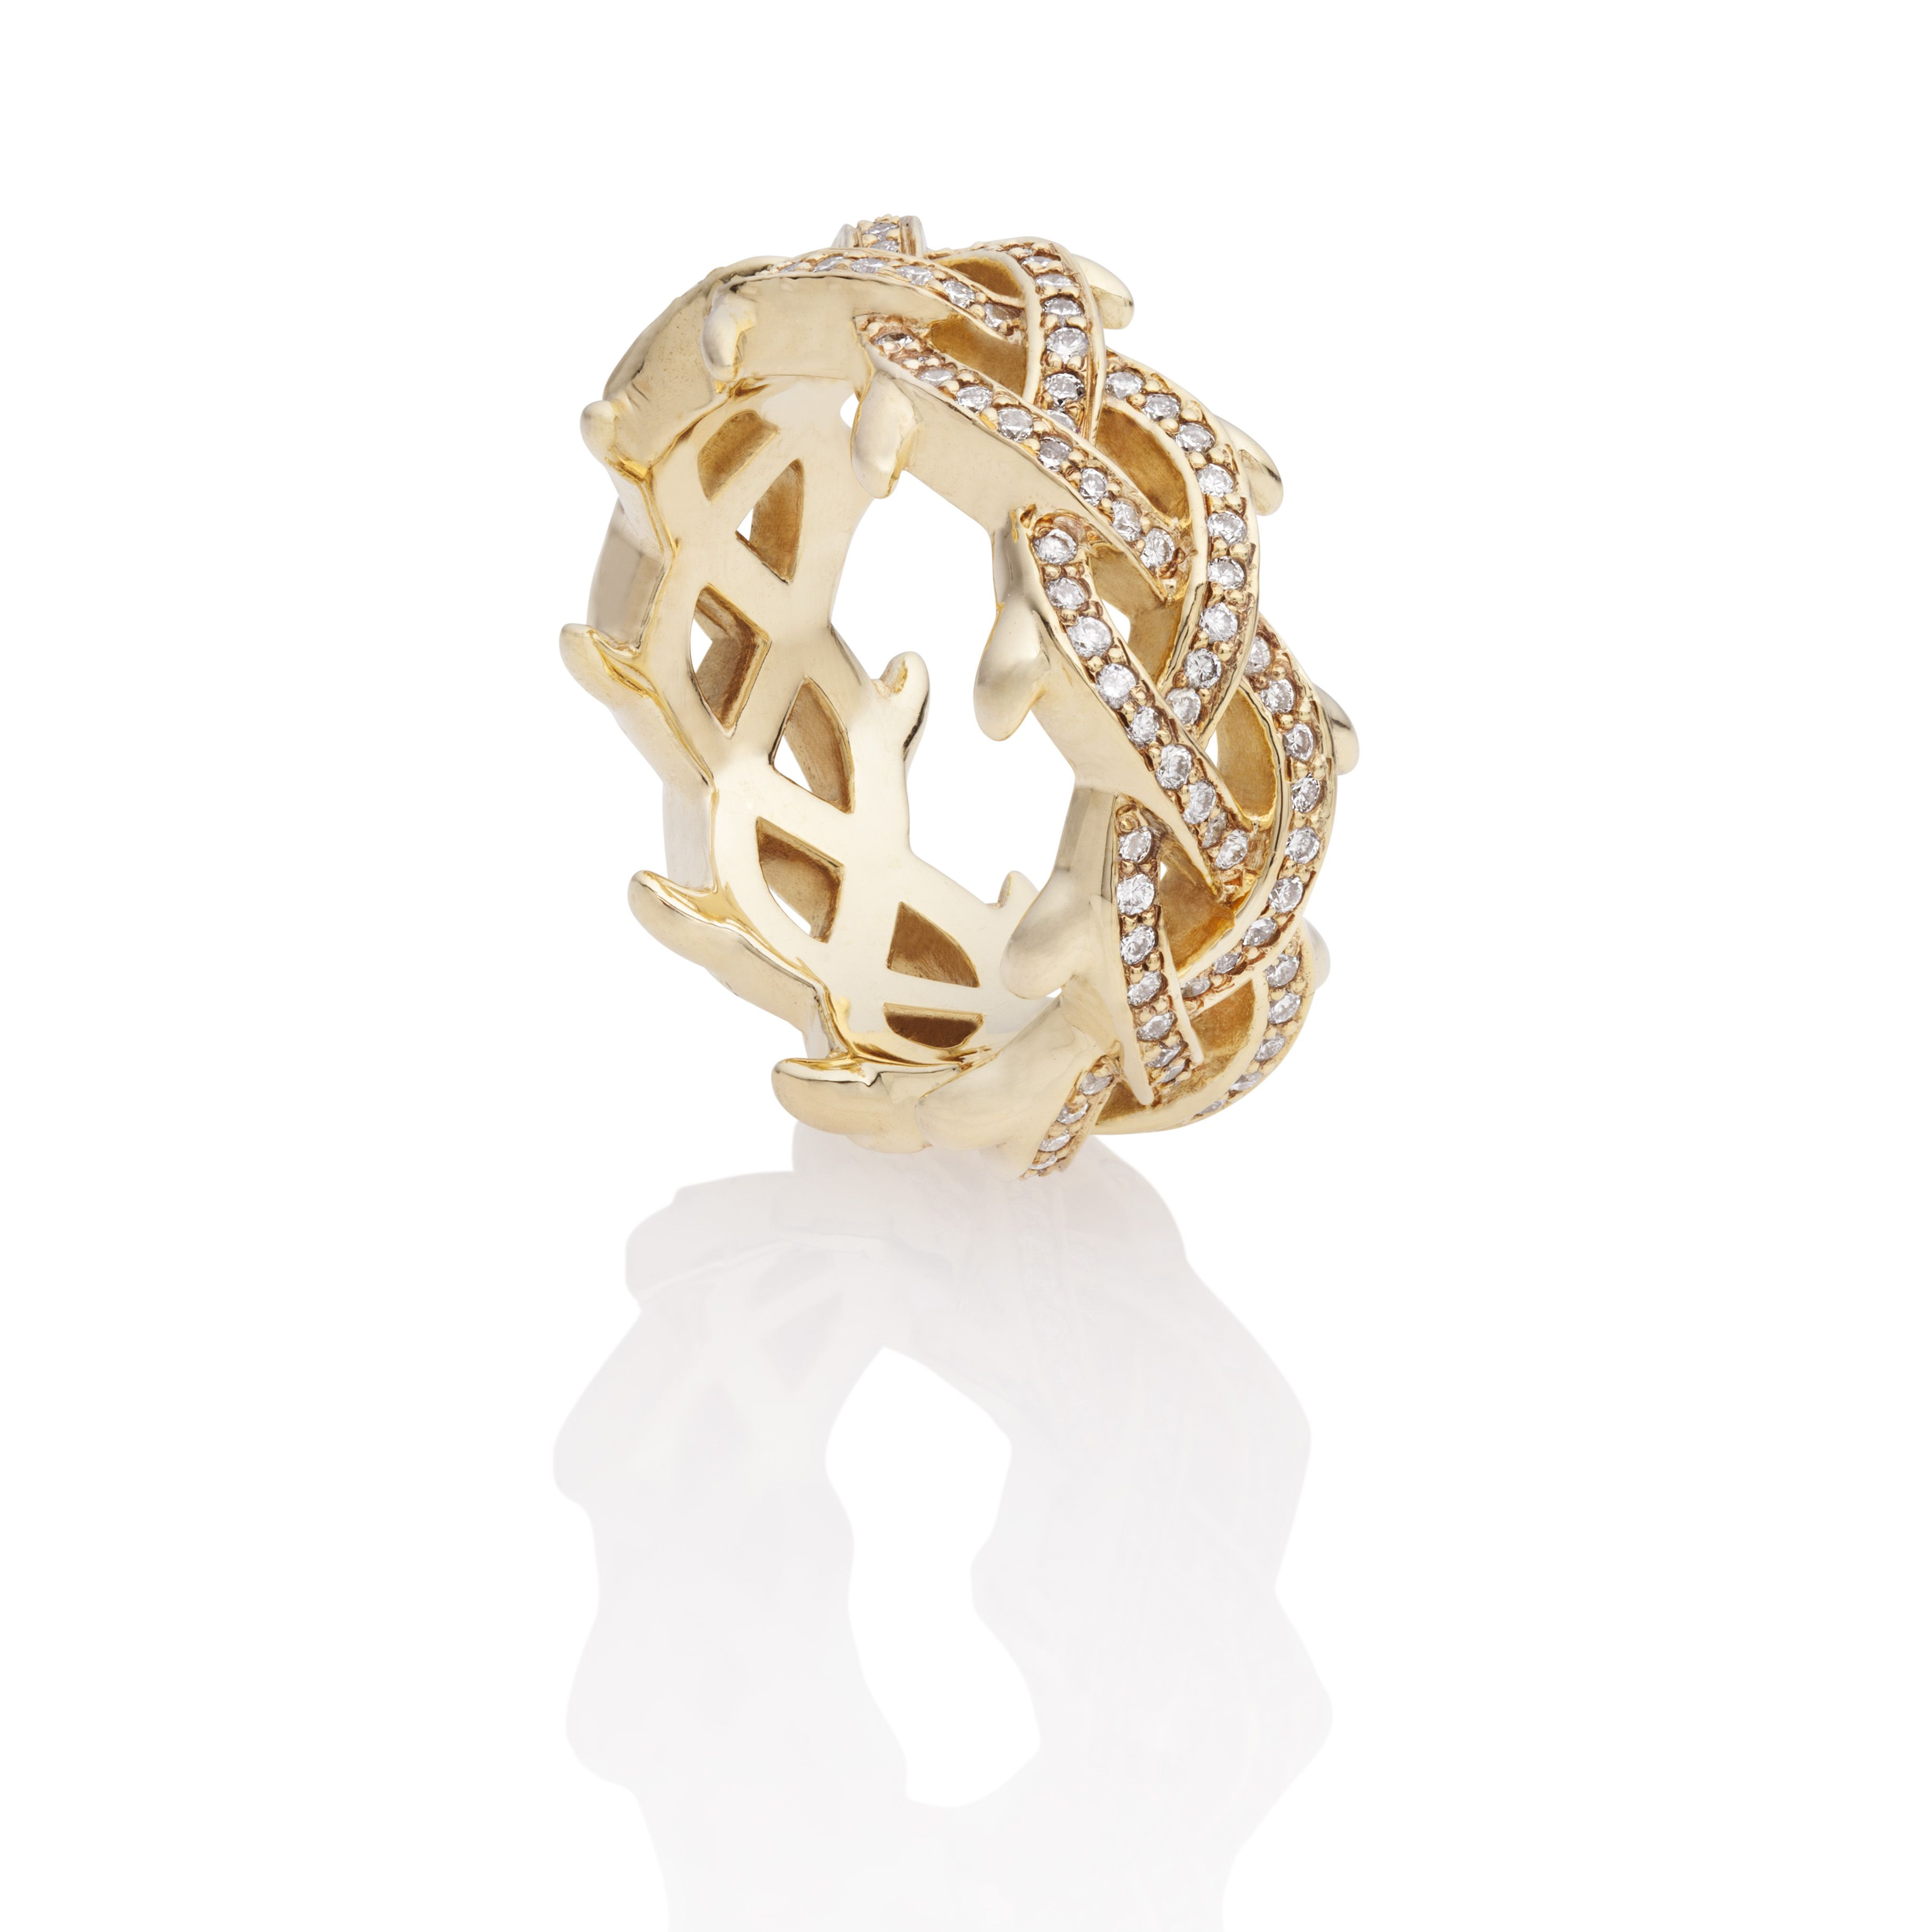 Thorn Ring Rose Gold With Diamonds Thorn By Niv Thorn Jewelry